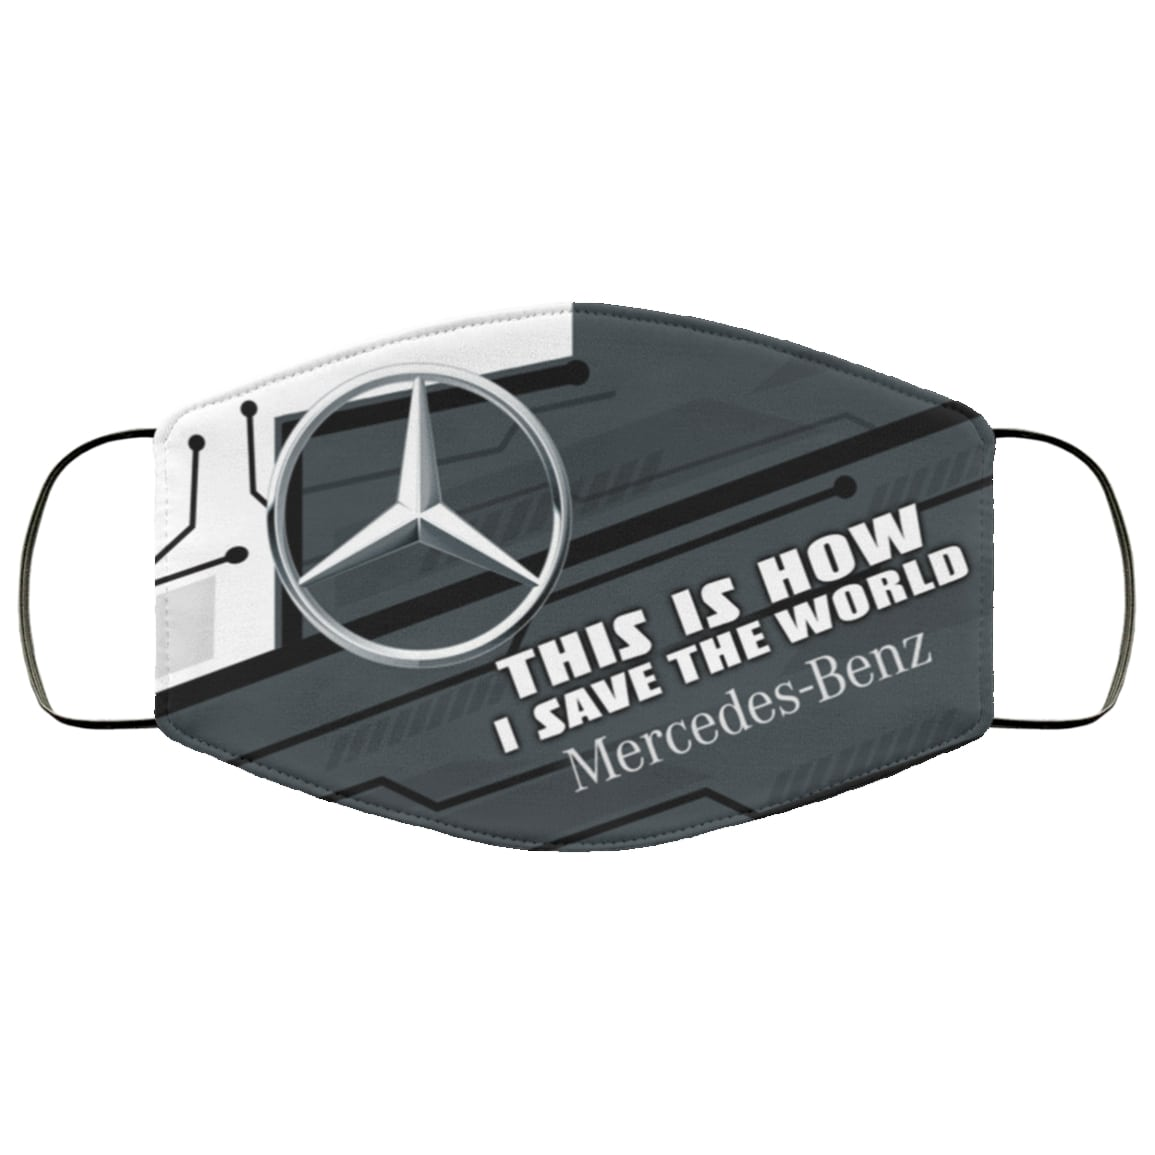 This is how i save the world mercedes-benz full printing face mask 3